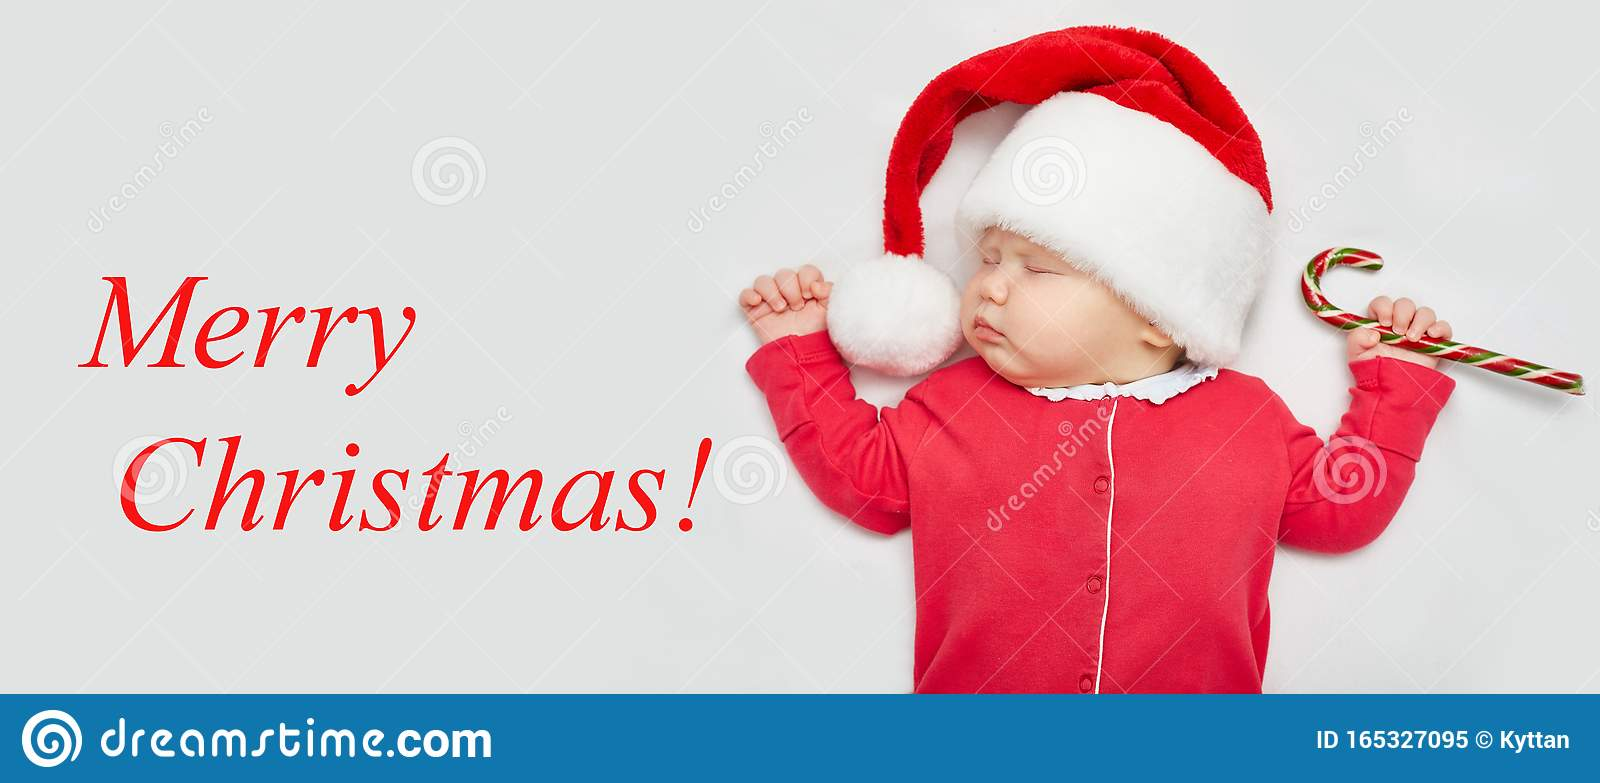 Christmas Card Or Banner With A Newborn Sleeping Baby In A Santa Claus Hat Stock Image Image Of Innocent Human 165327095